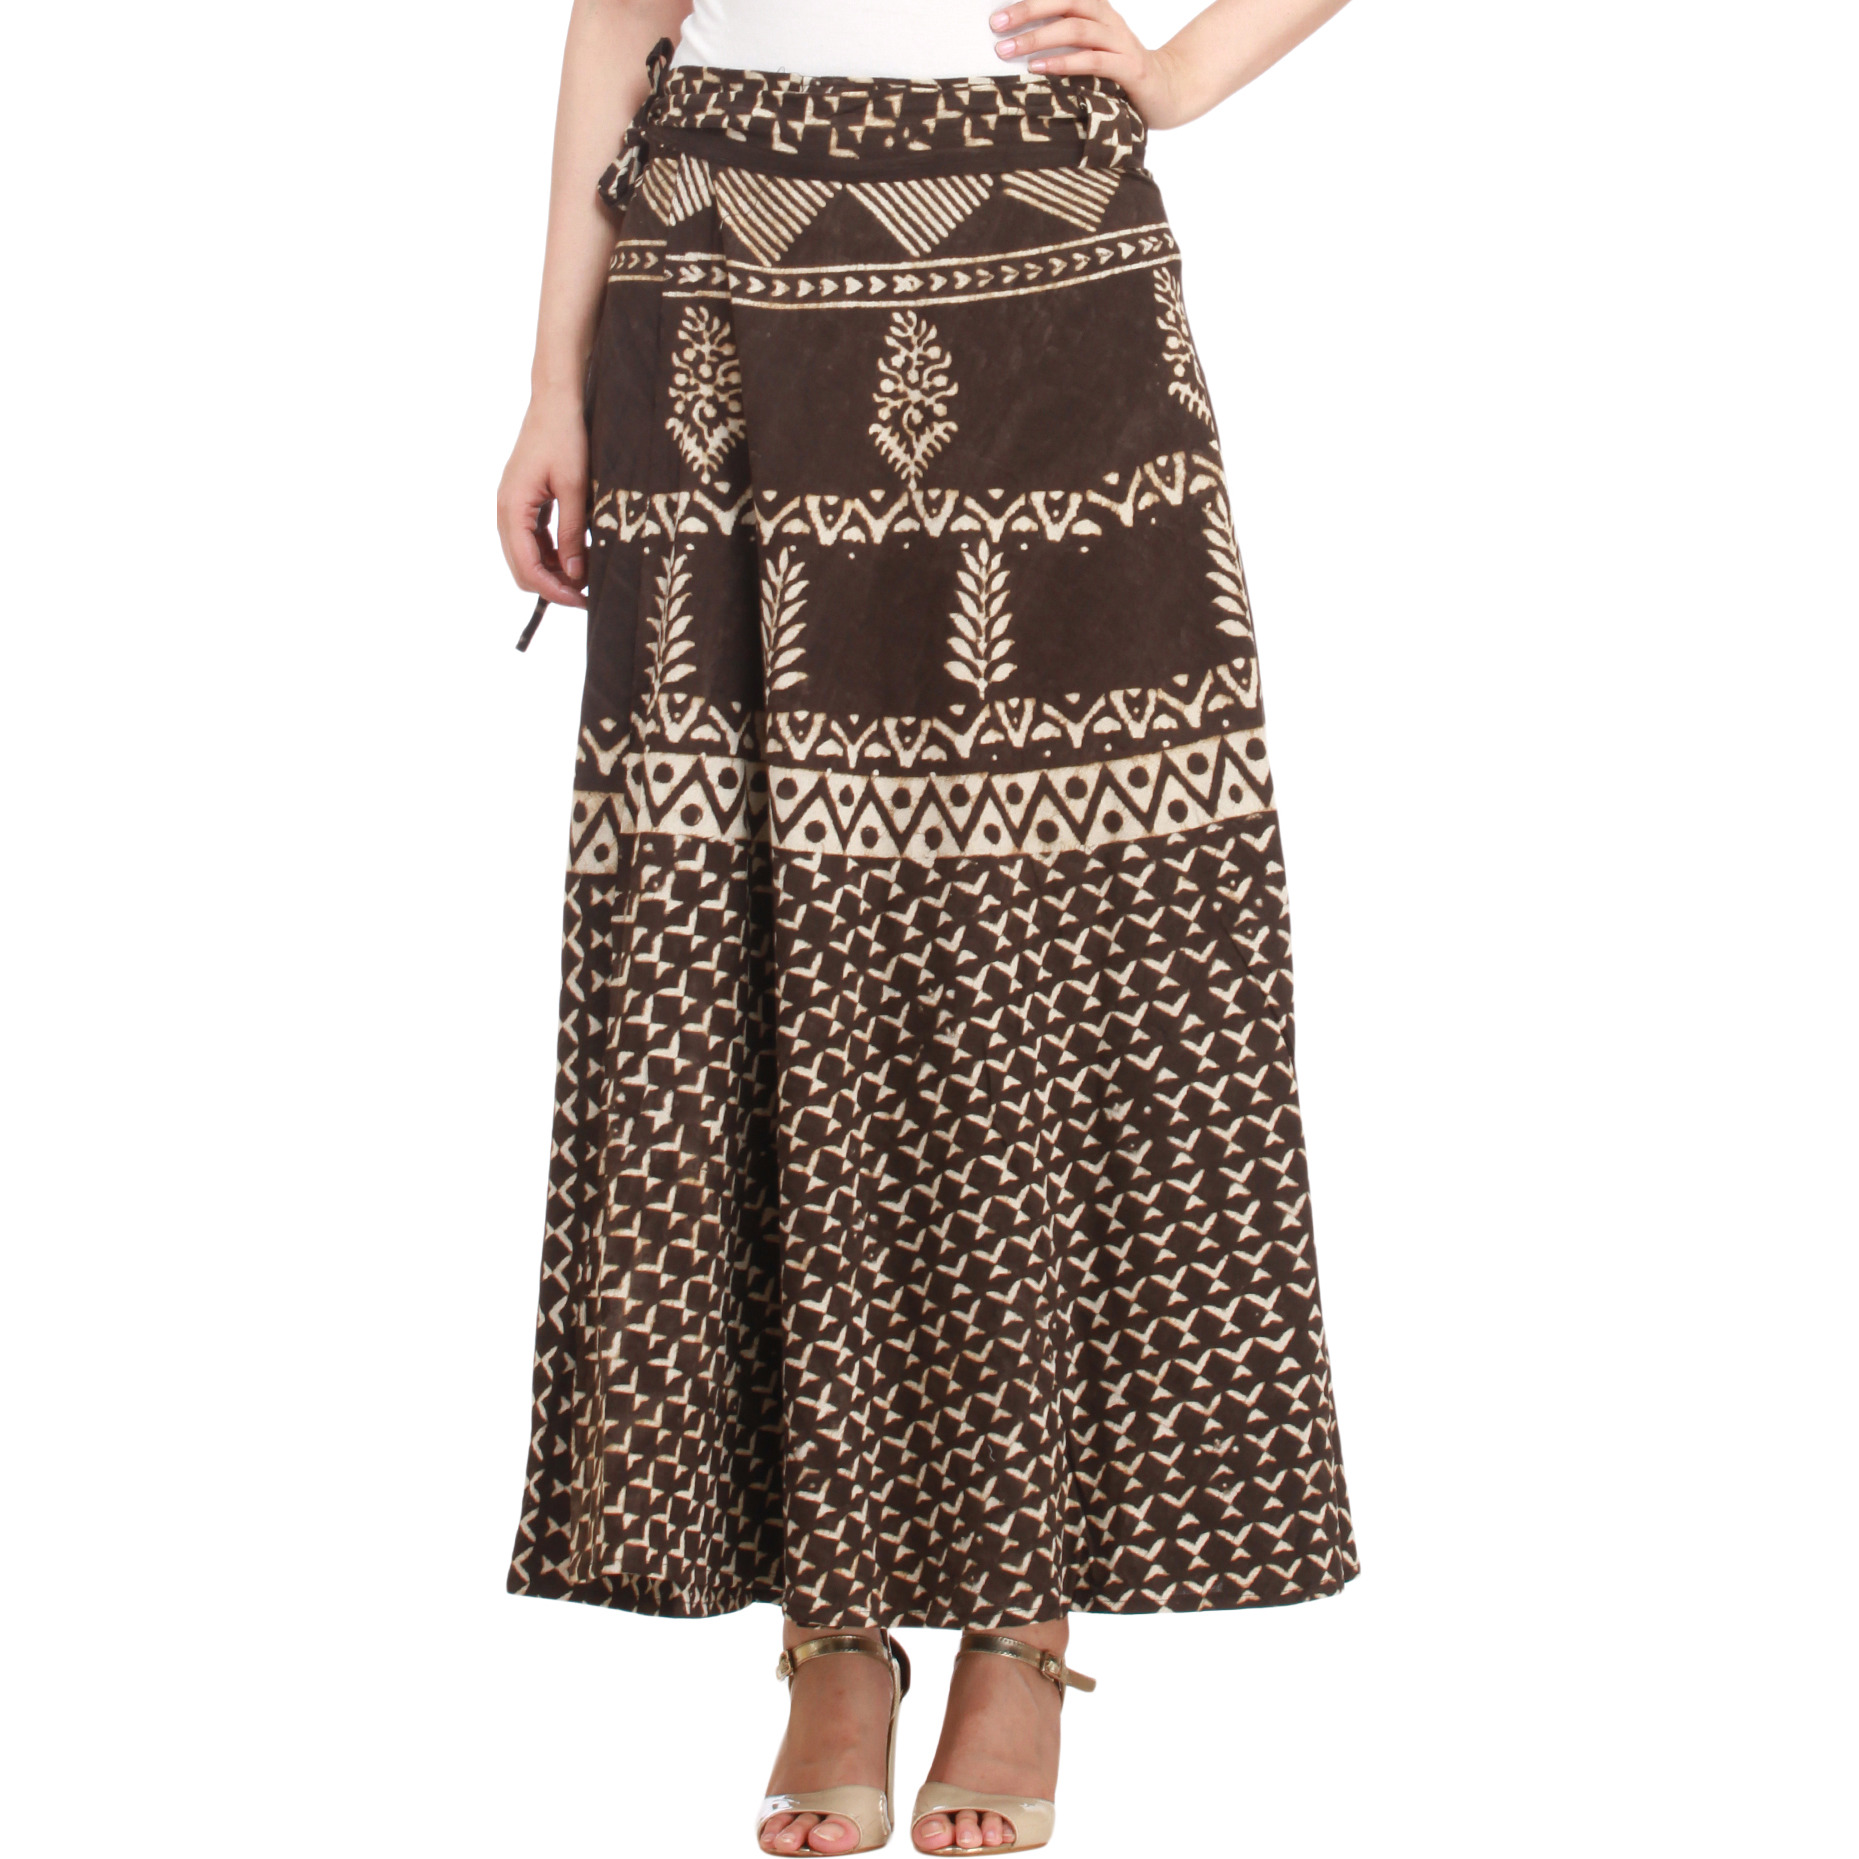 Coffee-Bean Wrap-Around Long Skirt from Pilkhuwa with Bagdoo Print